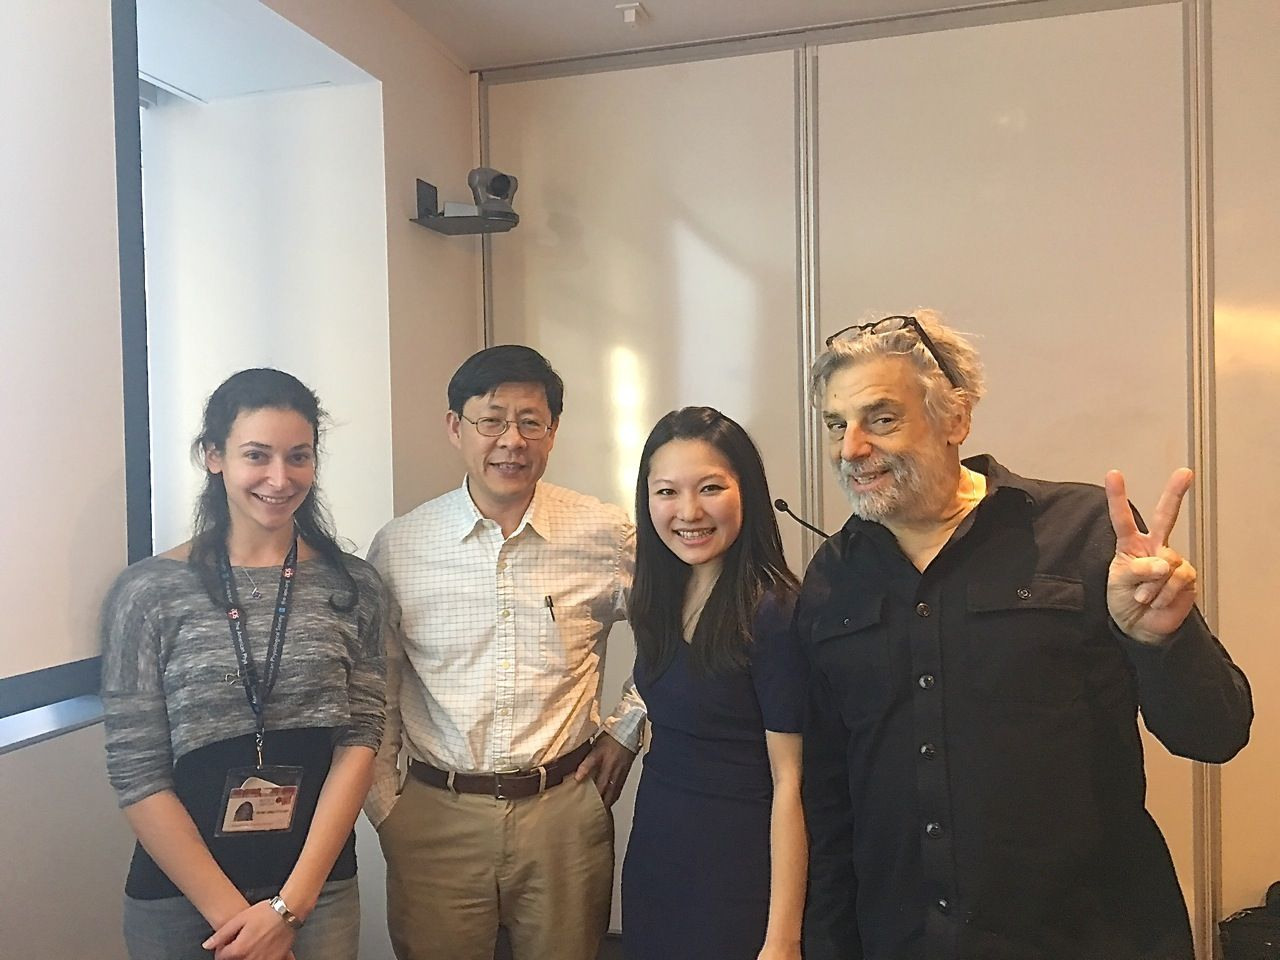 Danica and Yueming with Steve Gross right after her thesis presentation.